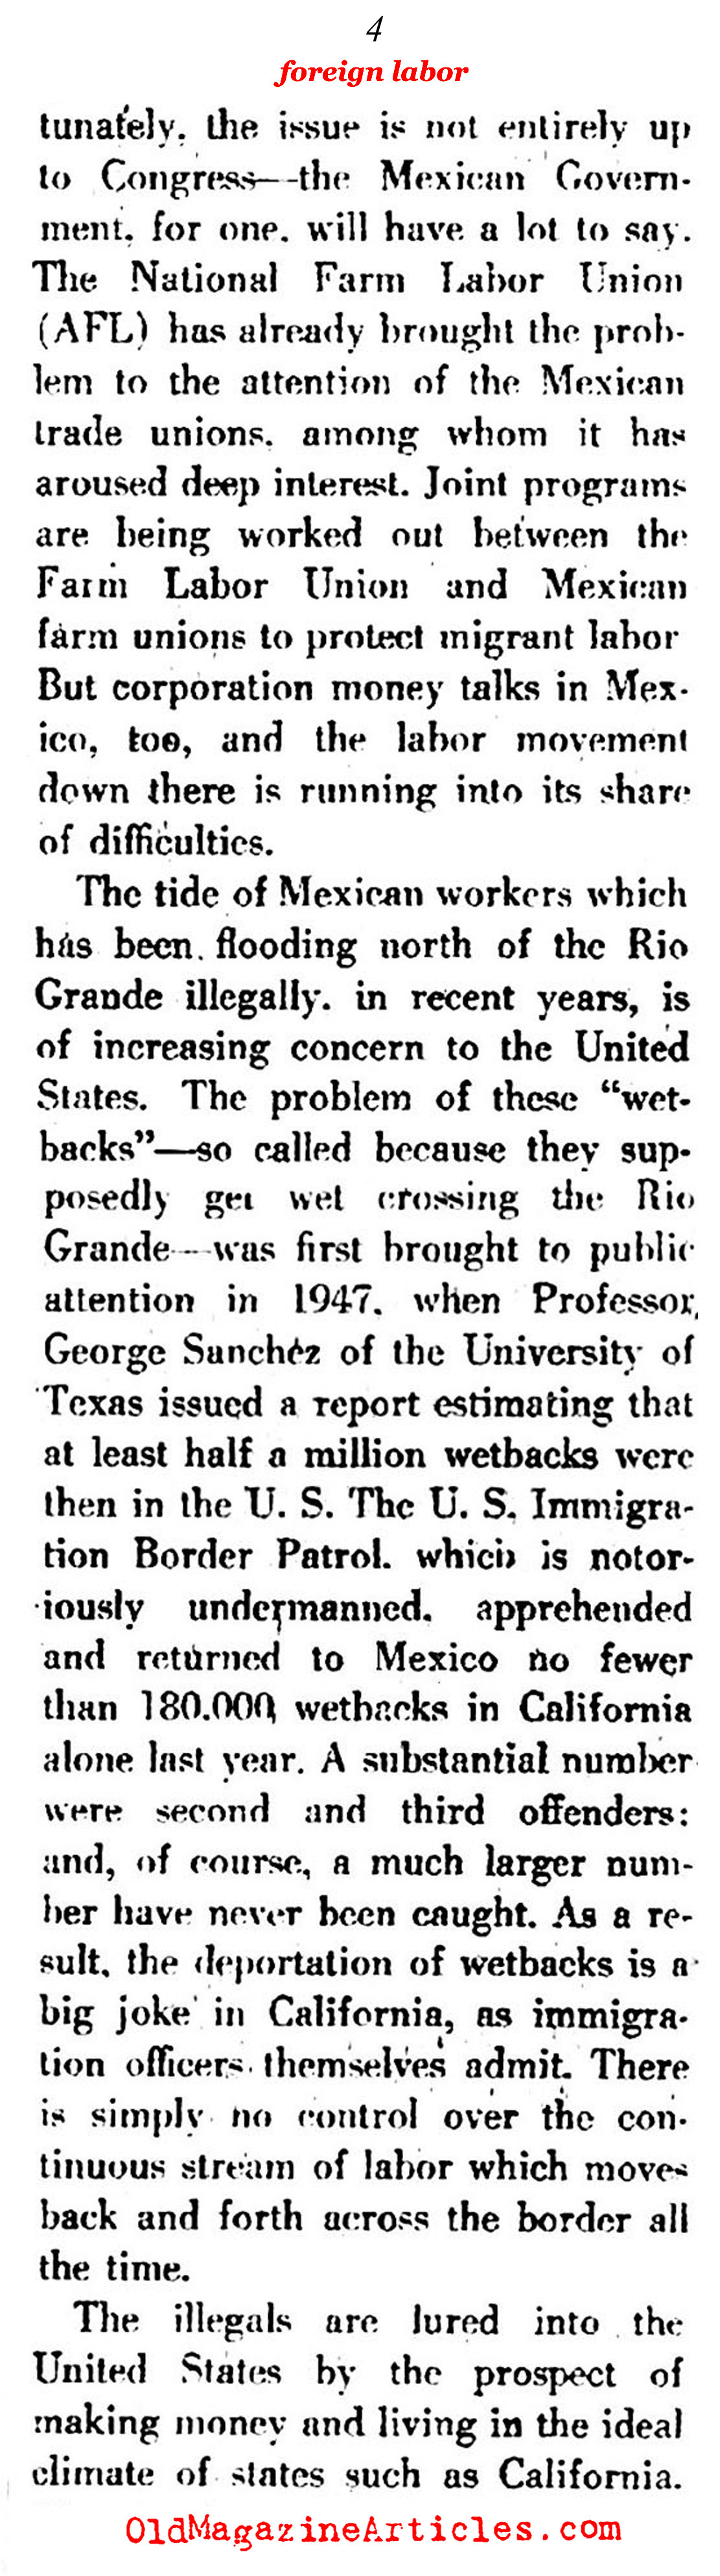 The Origins of <em>''Undocumented''</em> Labor (The New Leader, 1951)